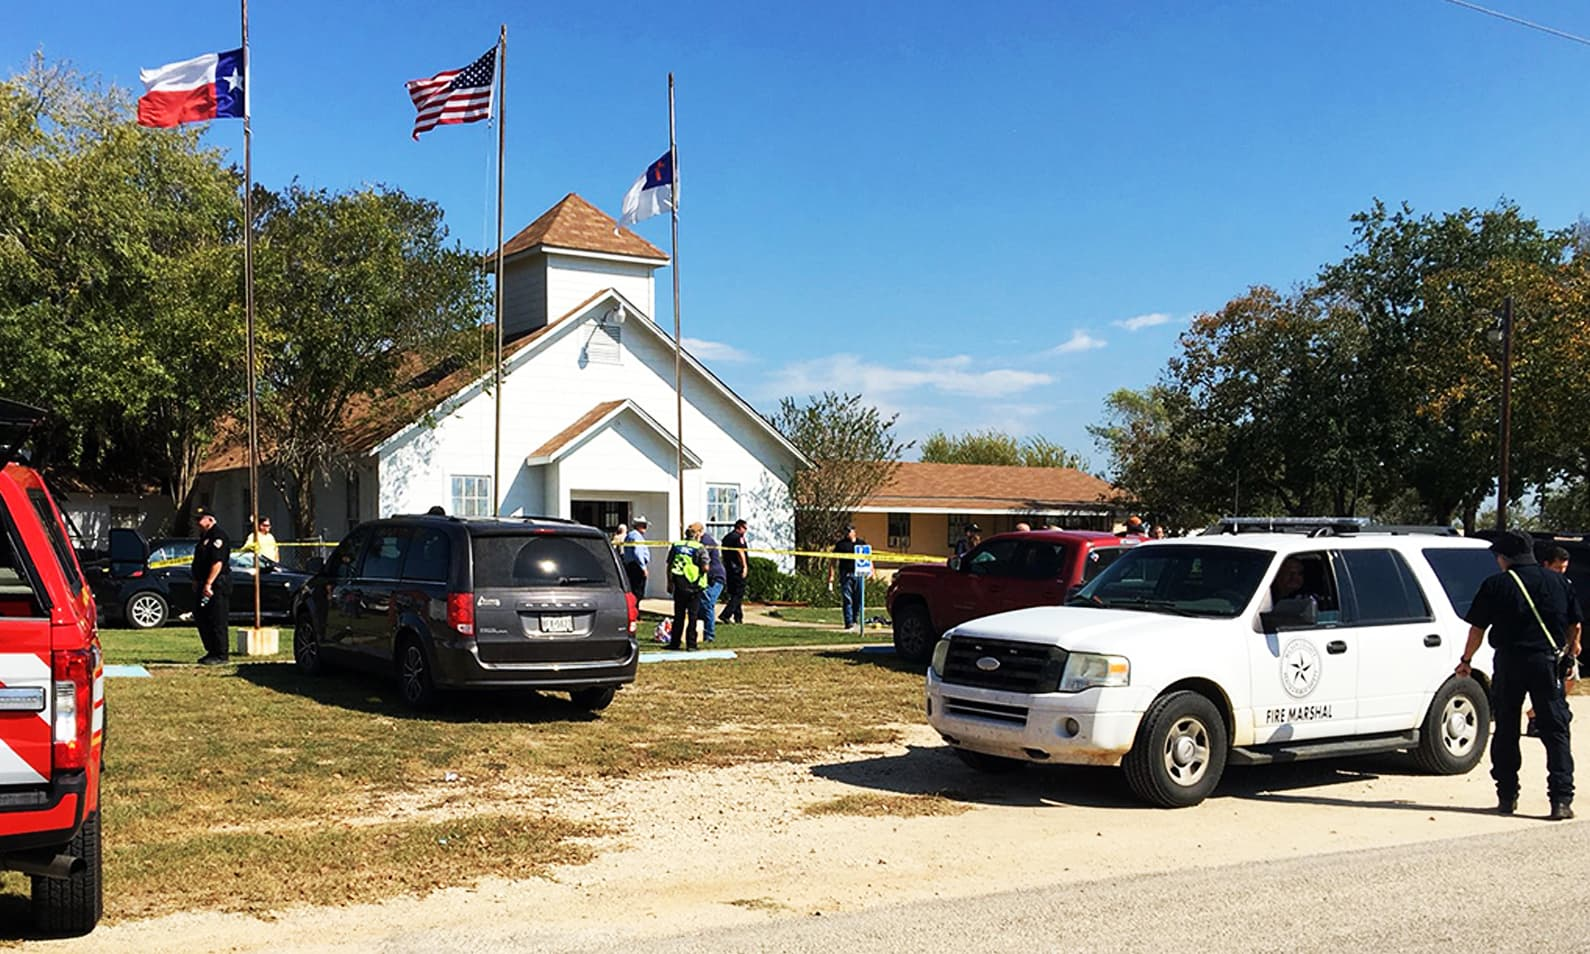 At least 26 killed in shooting at Texas church: US media